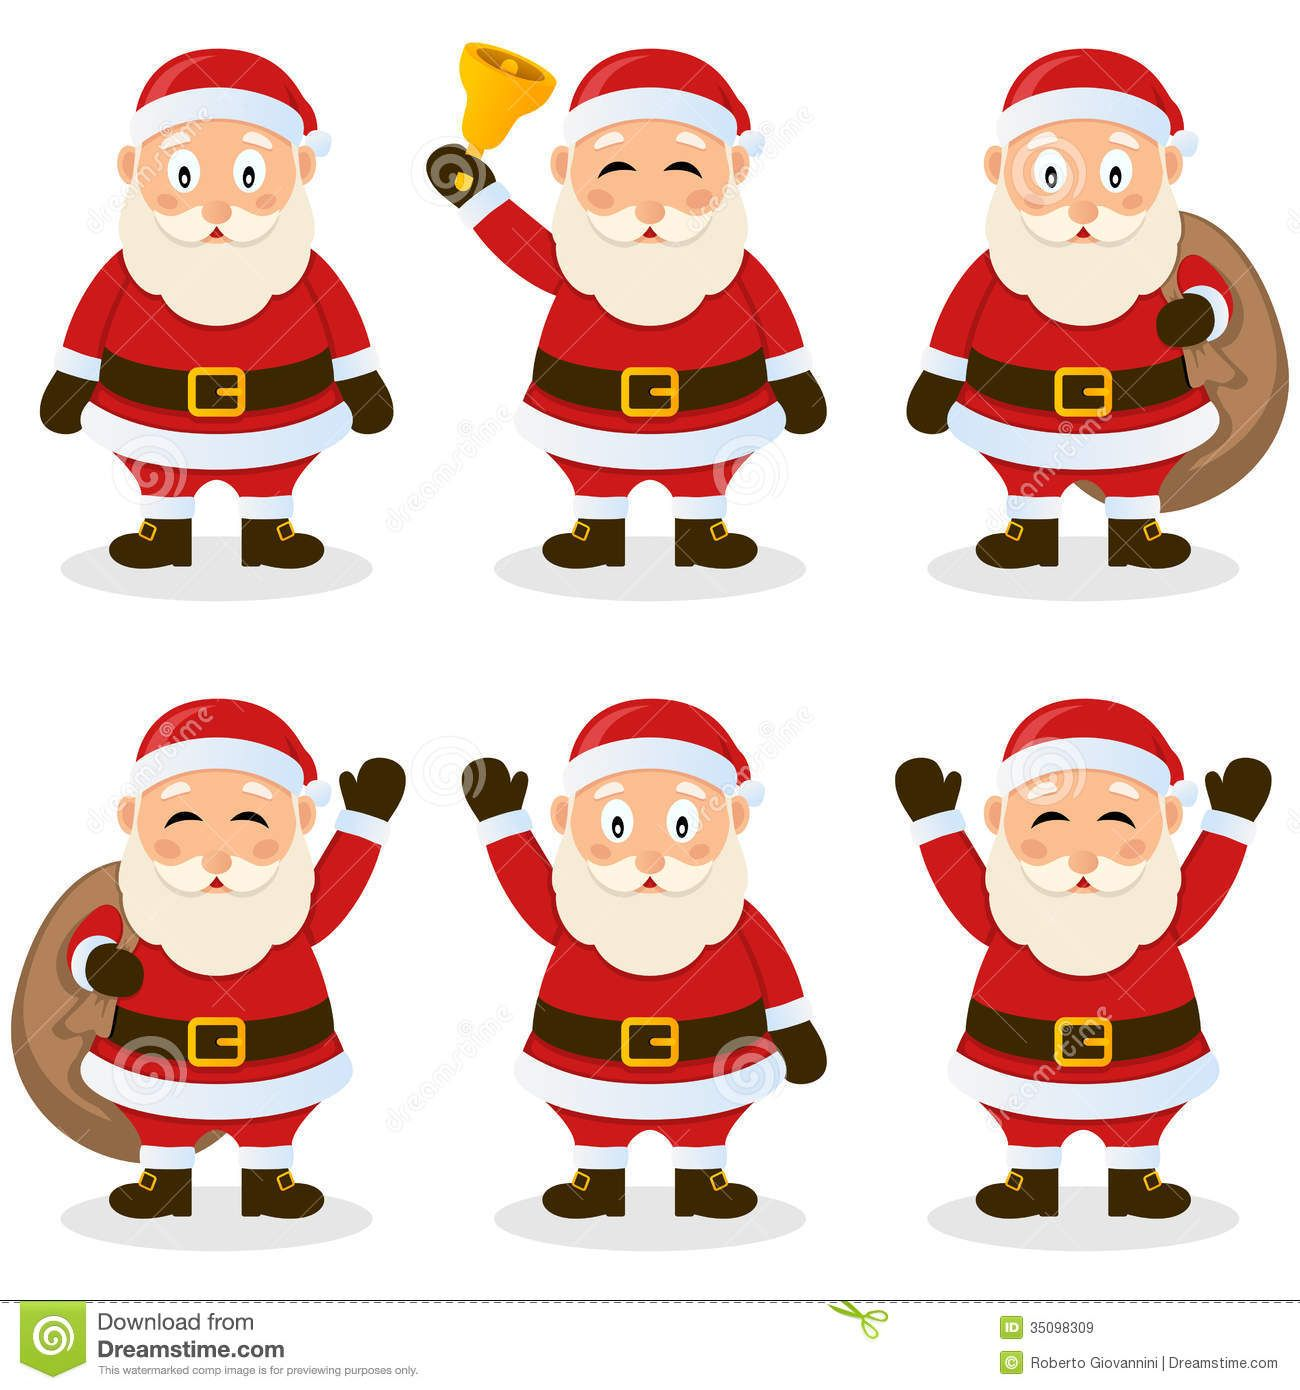 images for christmas cartoon characters Google Search